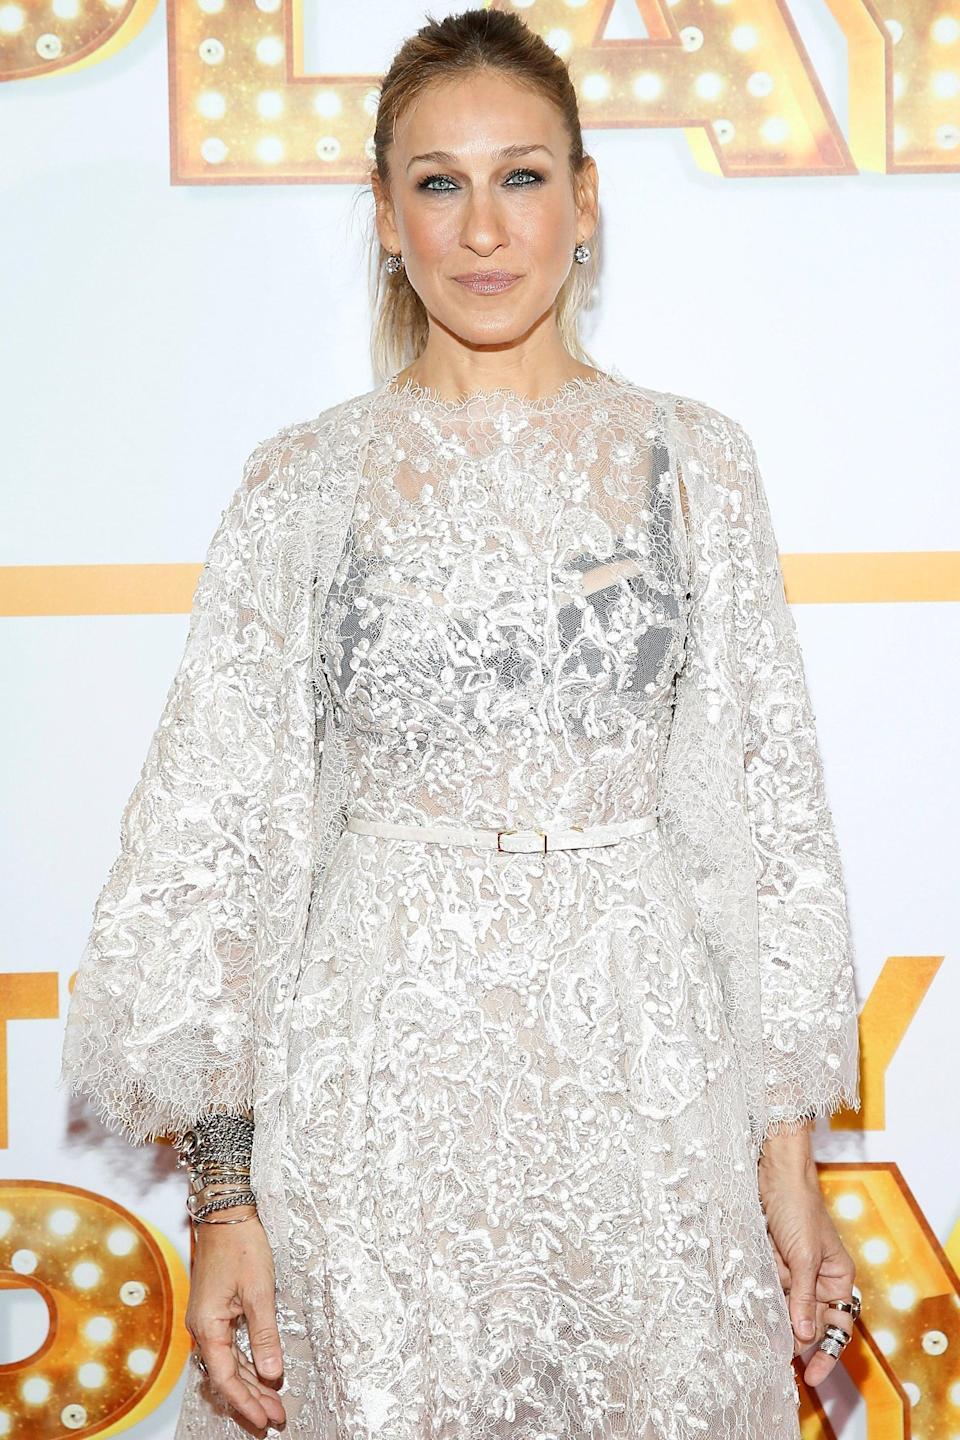 """<p><a class=""""link rapid-noclick-resp"""" href=""""https://www.popsugar.co.uk/Sarah-Jessica-Parker"""" rel=""""nofollow noopener"""" target=""""_blank"""" data-ylk=""""slk:Sarah Jessica Parker"""">Sarah Jessica Parker</a> found her career-changing role in 1998, when she first portrayed Carrie Bradshaw on <strong><a class=""""link rapid-noclick-resp"""" href=""""https://www.popsugar.co.uk/Sex-and-the-City"""" rel=""""nofollow noopener"""" target=""""_blank"""" data-ylk=""""slk:Sex and the City"""">Sex and the City</a></strong>. Thanks to her HBO show <strong>Divorce</strong> and films like <strong>Failure to Launch</strong> and <strong>Did You Hear About the Morgans?</strong>, she's cemented her star status, in addition to being one of New York's most recognizable fashion icons. The actress also has an eponymous line of fragrances, accessories, and Italian-made footwear. Most recently, she's reprised her role as Carrie for the <strong>Sex and the City</strong> reboot, <a href=""""https://www.popsugar.com/latest/And-Just-Like-That"""" class=""""link rapid-noclick-resp"""" rel=""""nofollow noopener"""" target=""""_blank"""" data-ylk=""""slk:And Just Like That""""><b>And Just Like That</b></a>.</p>"""